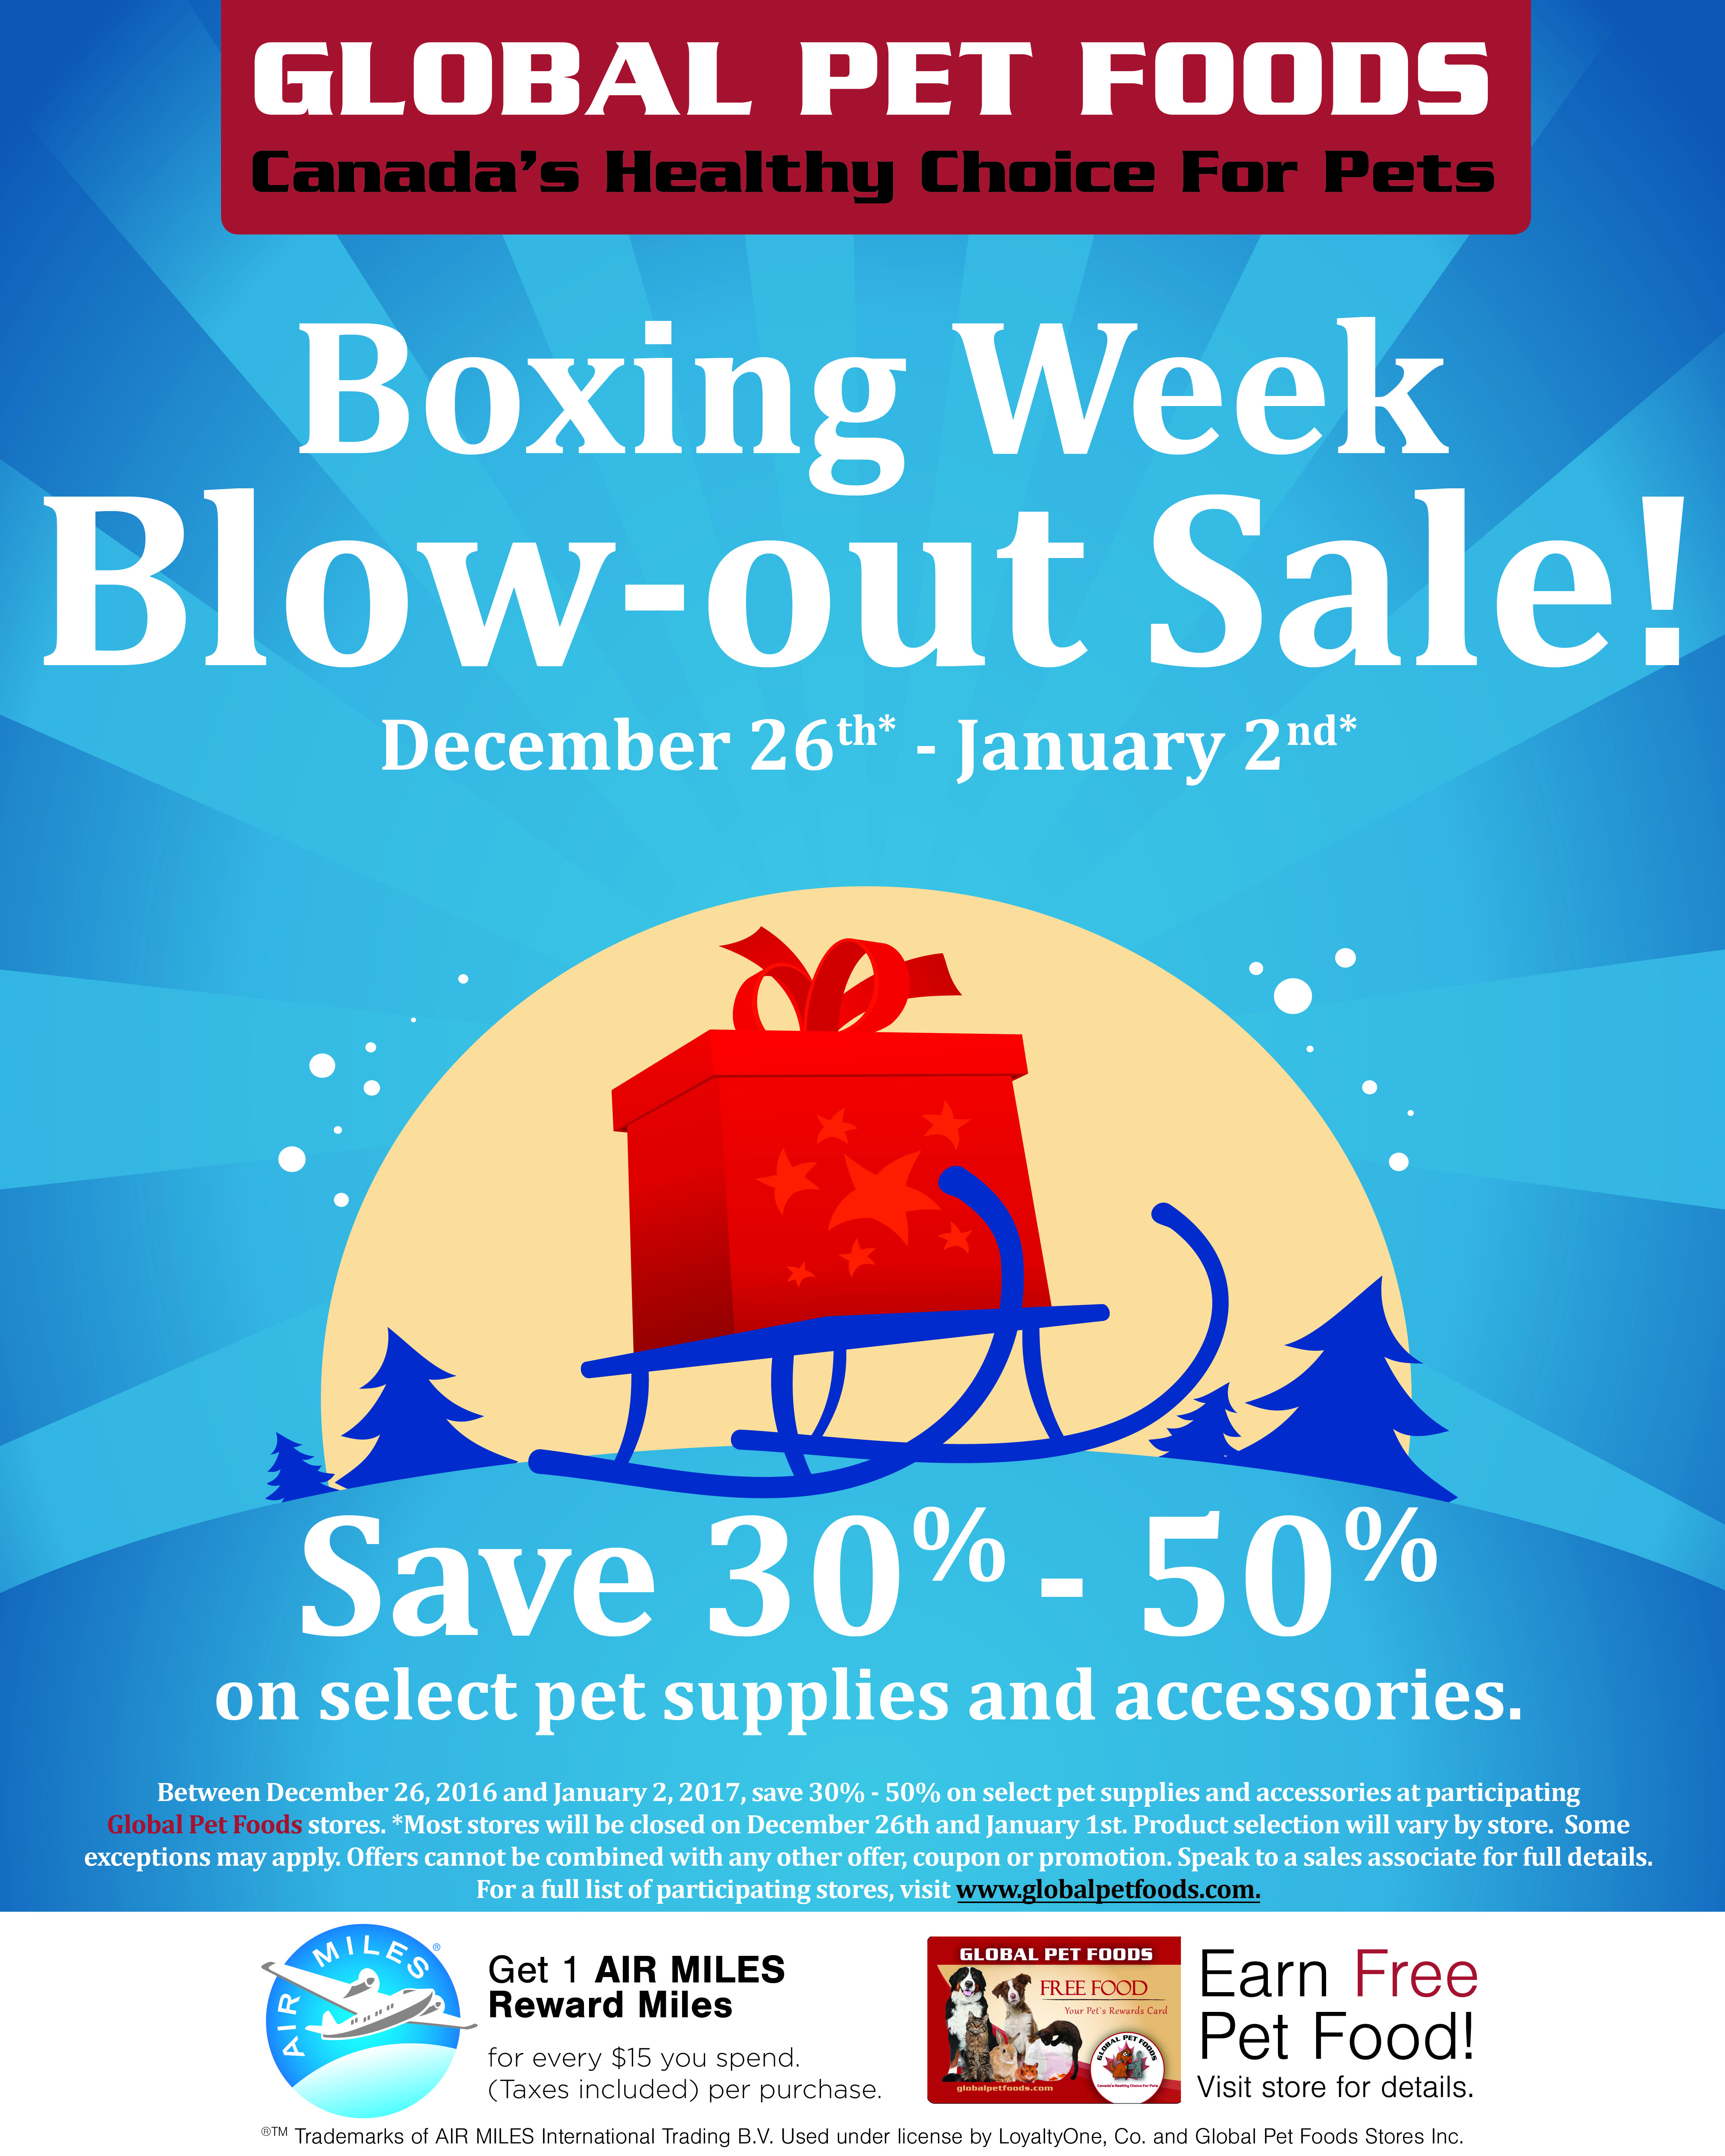 Shop The Global Pet Foods Boxing Week Blow Out Sale And Save With Up To 50 On A Variety Of Pet Supplies And Accessories Pet Food Store Food Store Food Animals